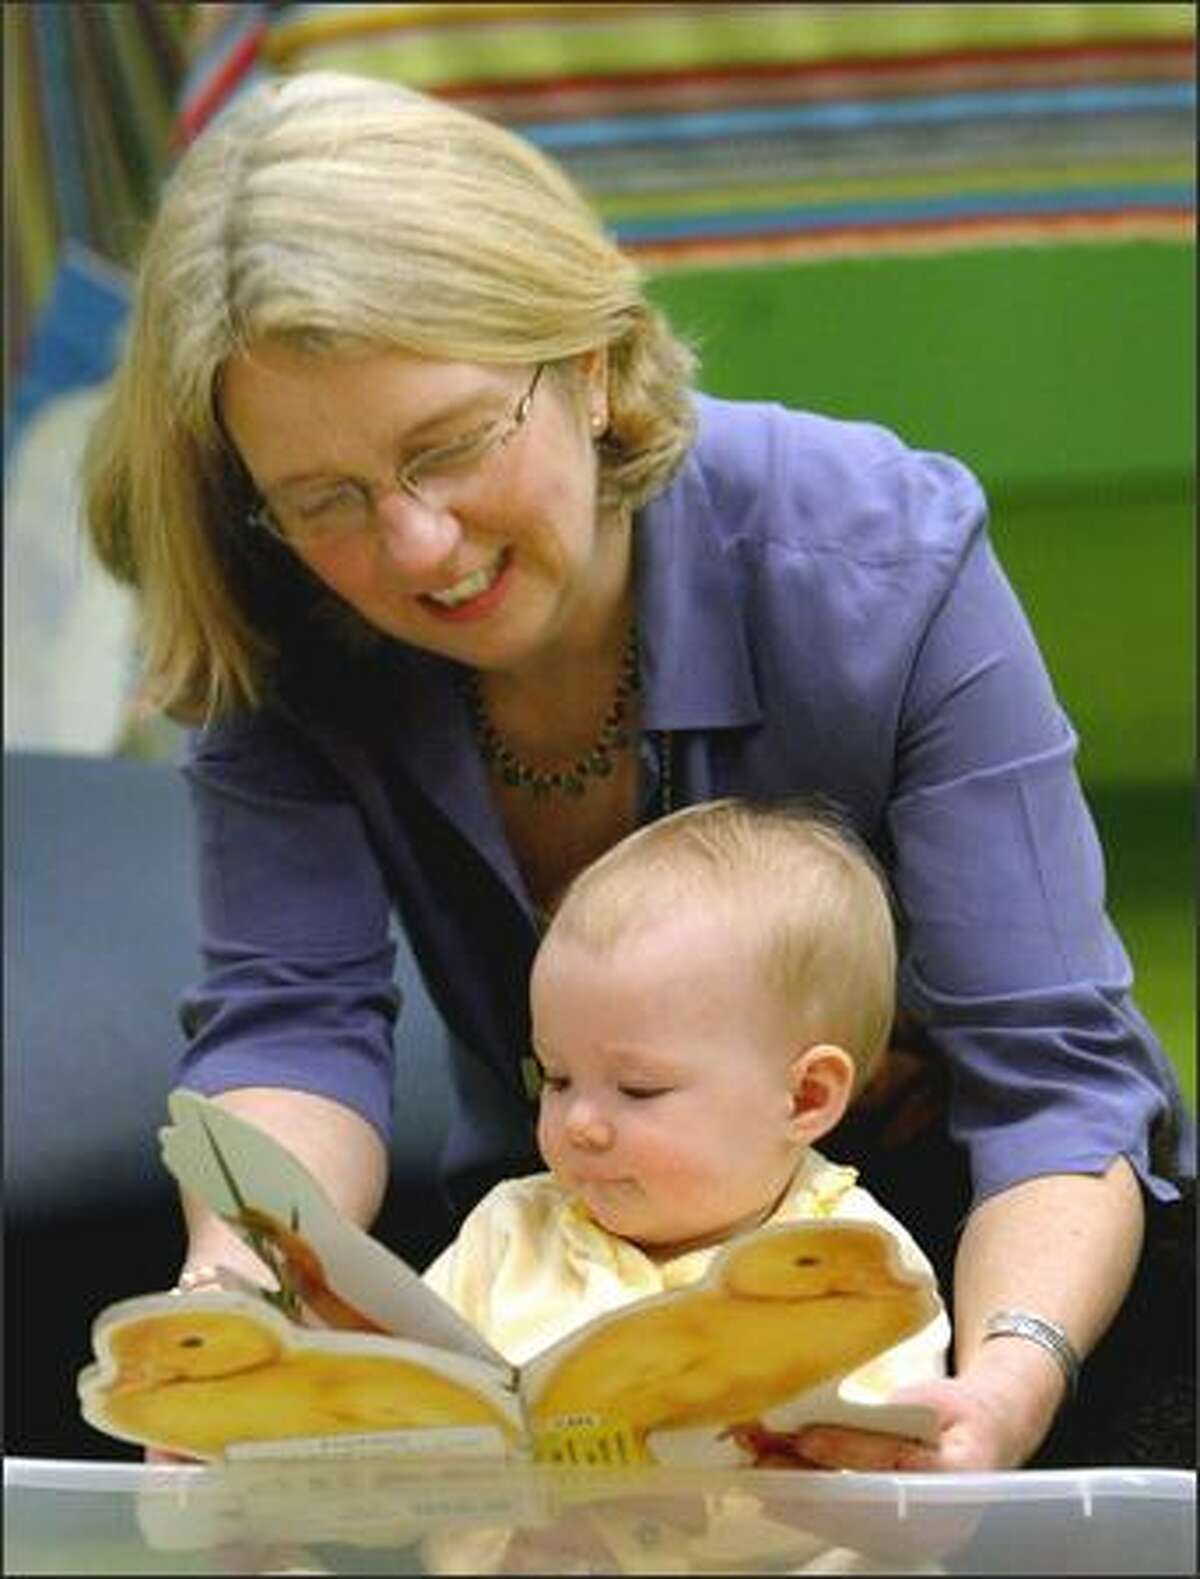 Betsy Cluck-Keil reads a book to 10-moth-old Sophia Price while she teaches parents how to read to their infants.